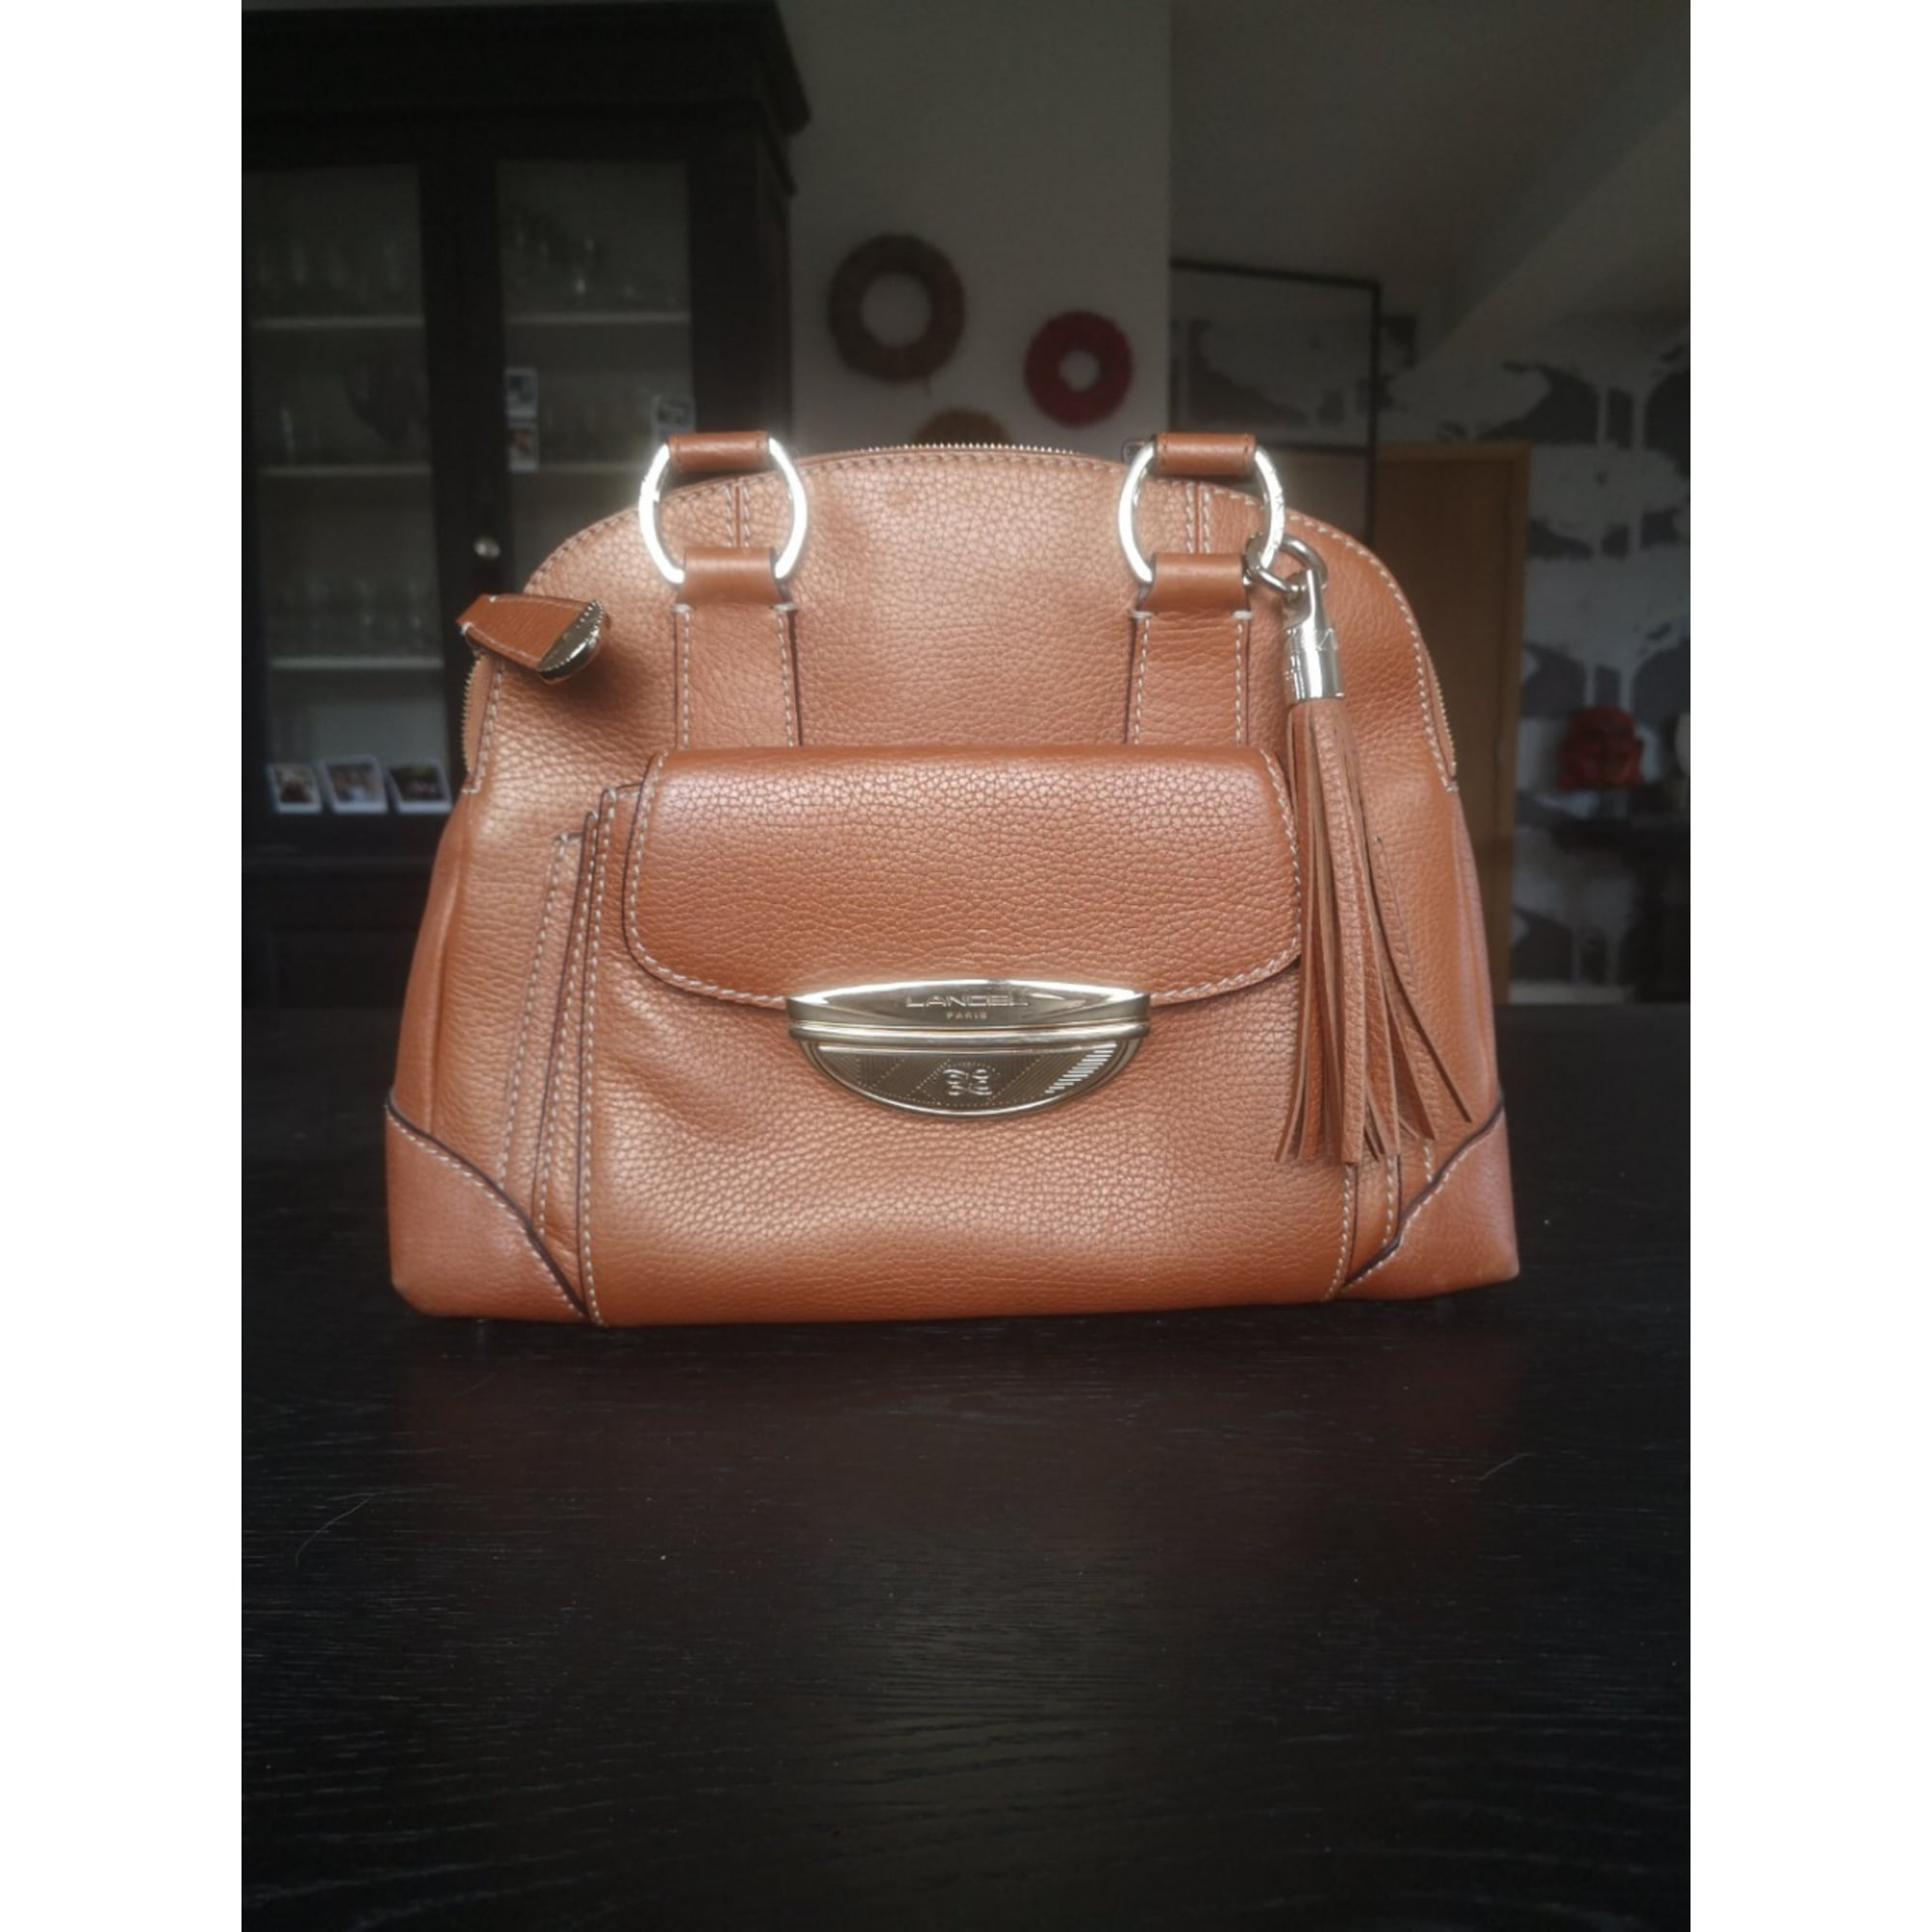 Sac à main en cuir LANCEL Adjani Marron